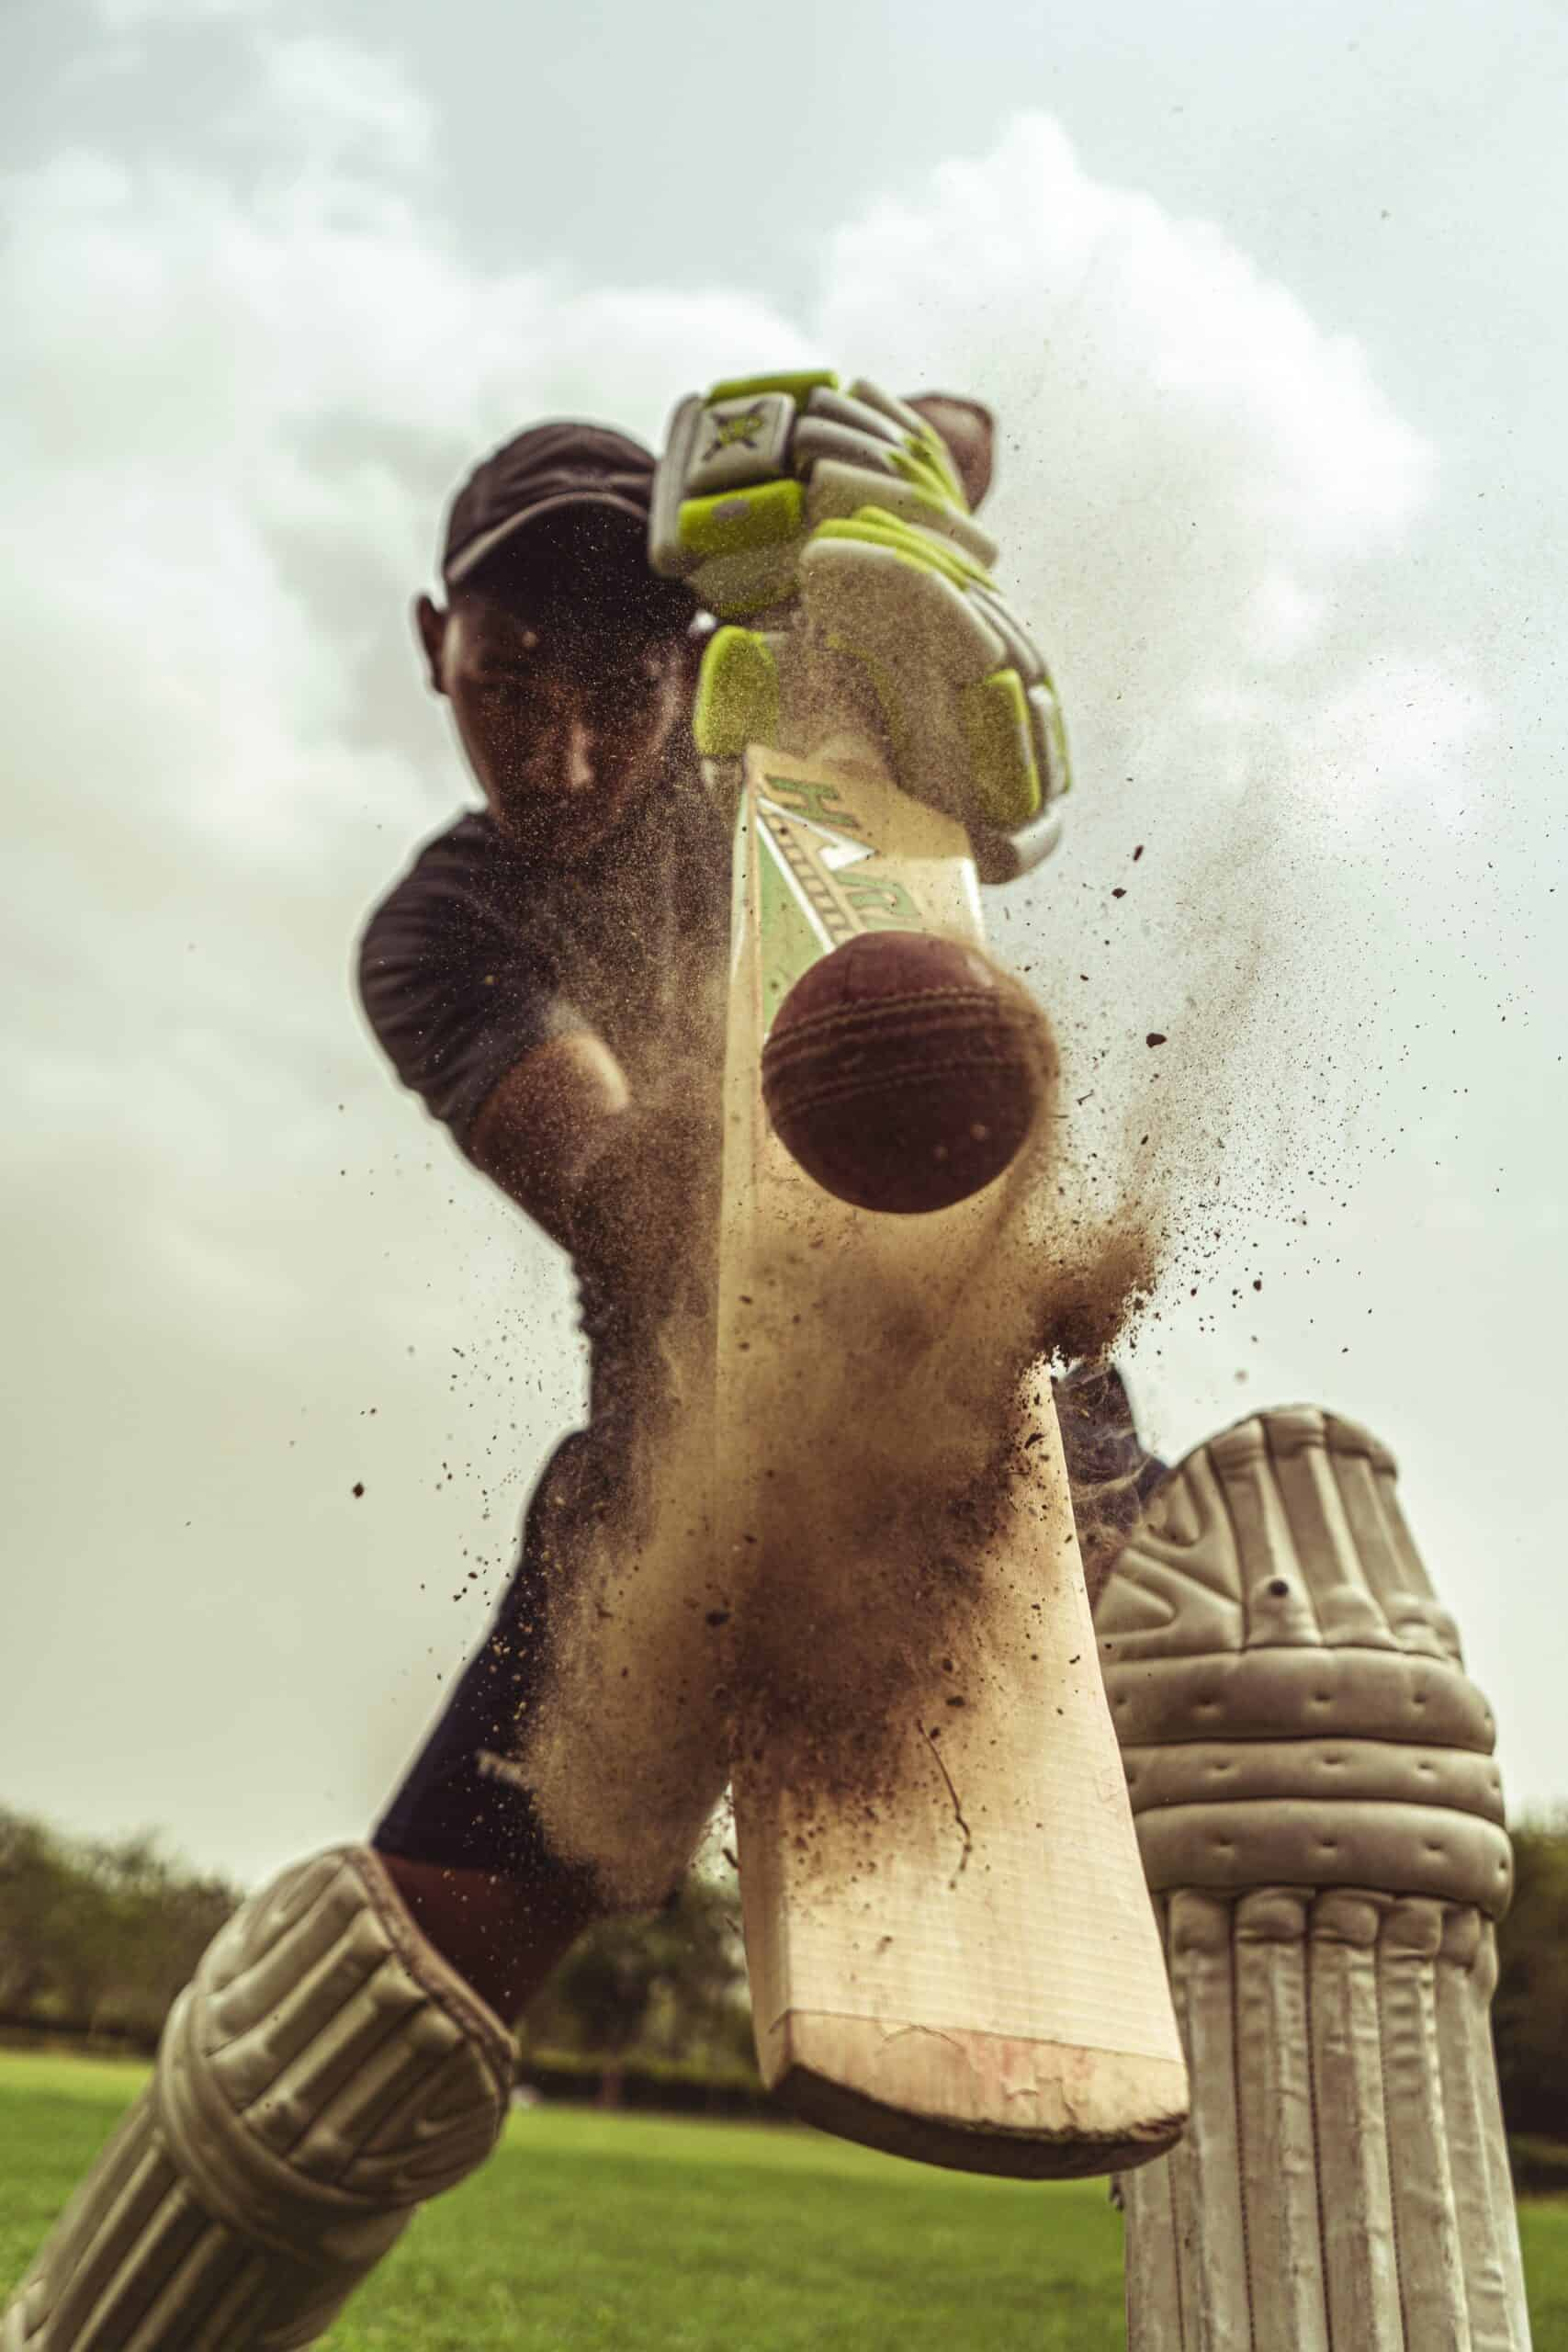 Digital Marketing For Cricket Clubs